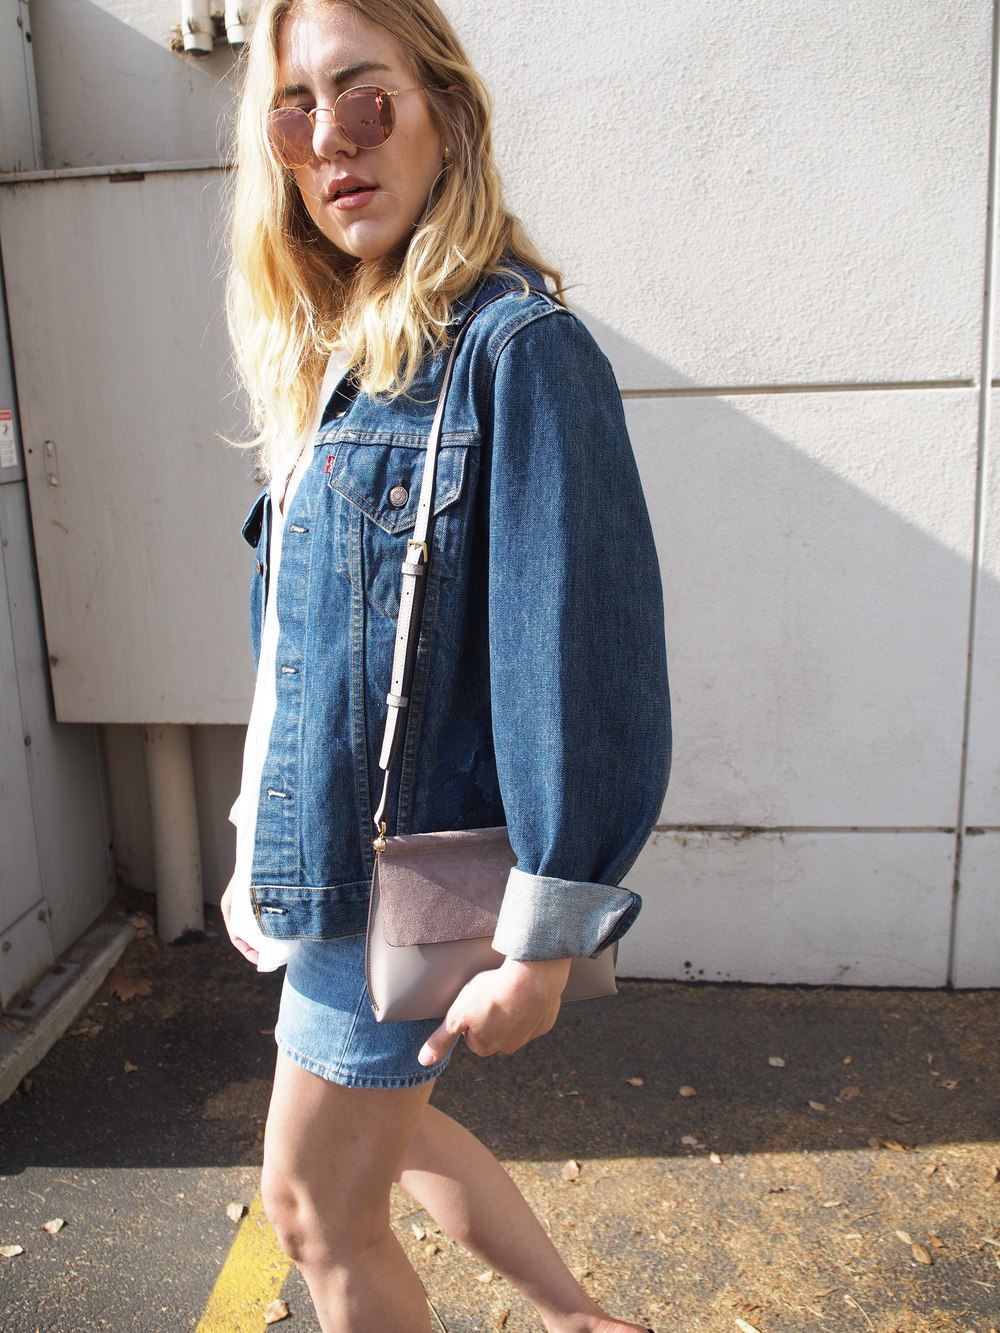 Levi's Denim M.i.h Jeans HiEleven Purse Fifteen Twenty Casual Street Look x Taylr Anne